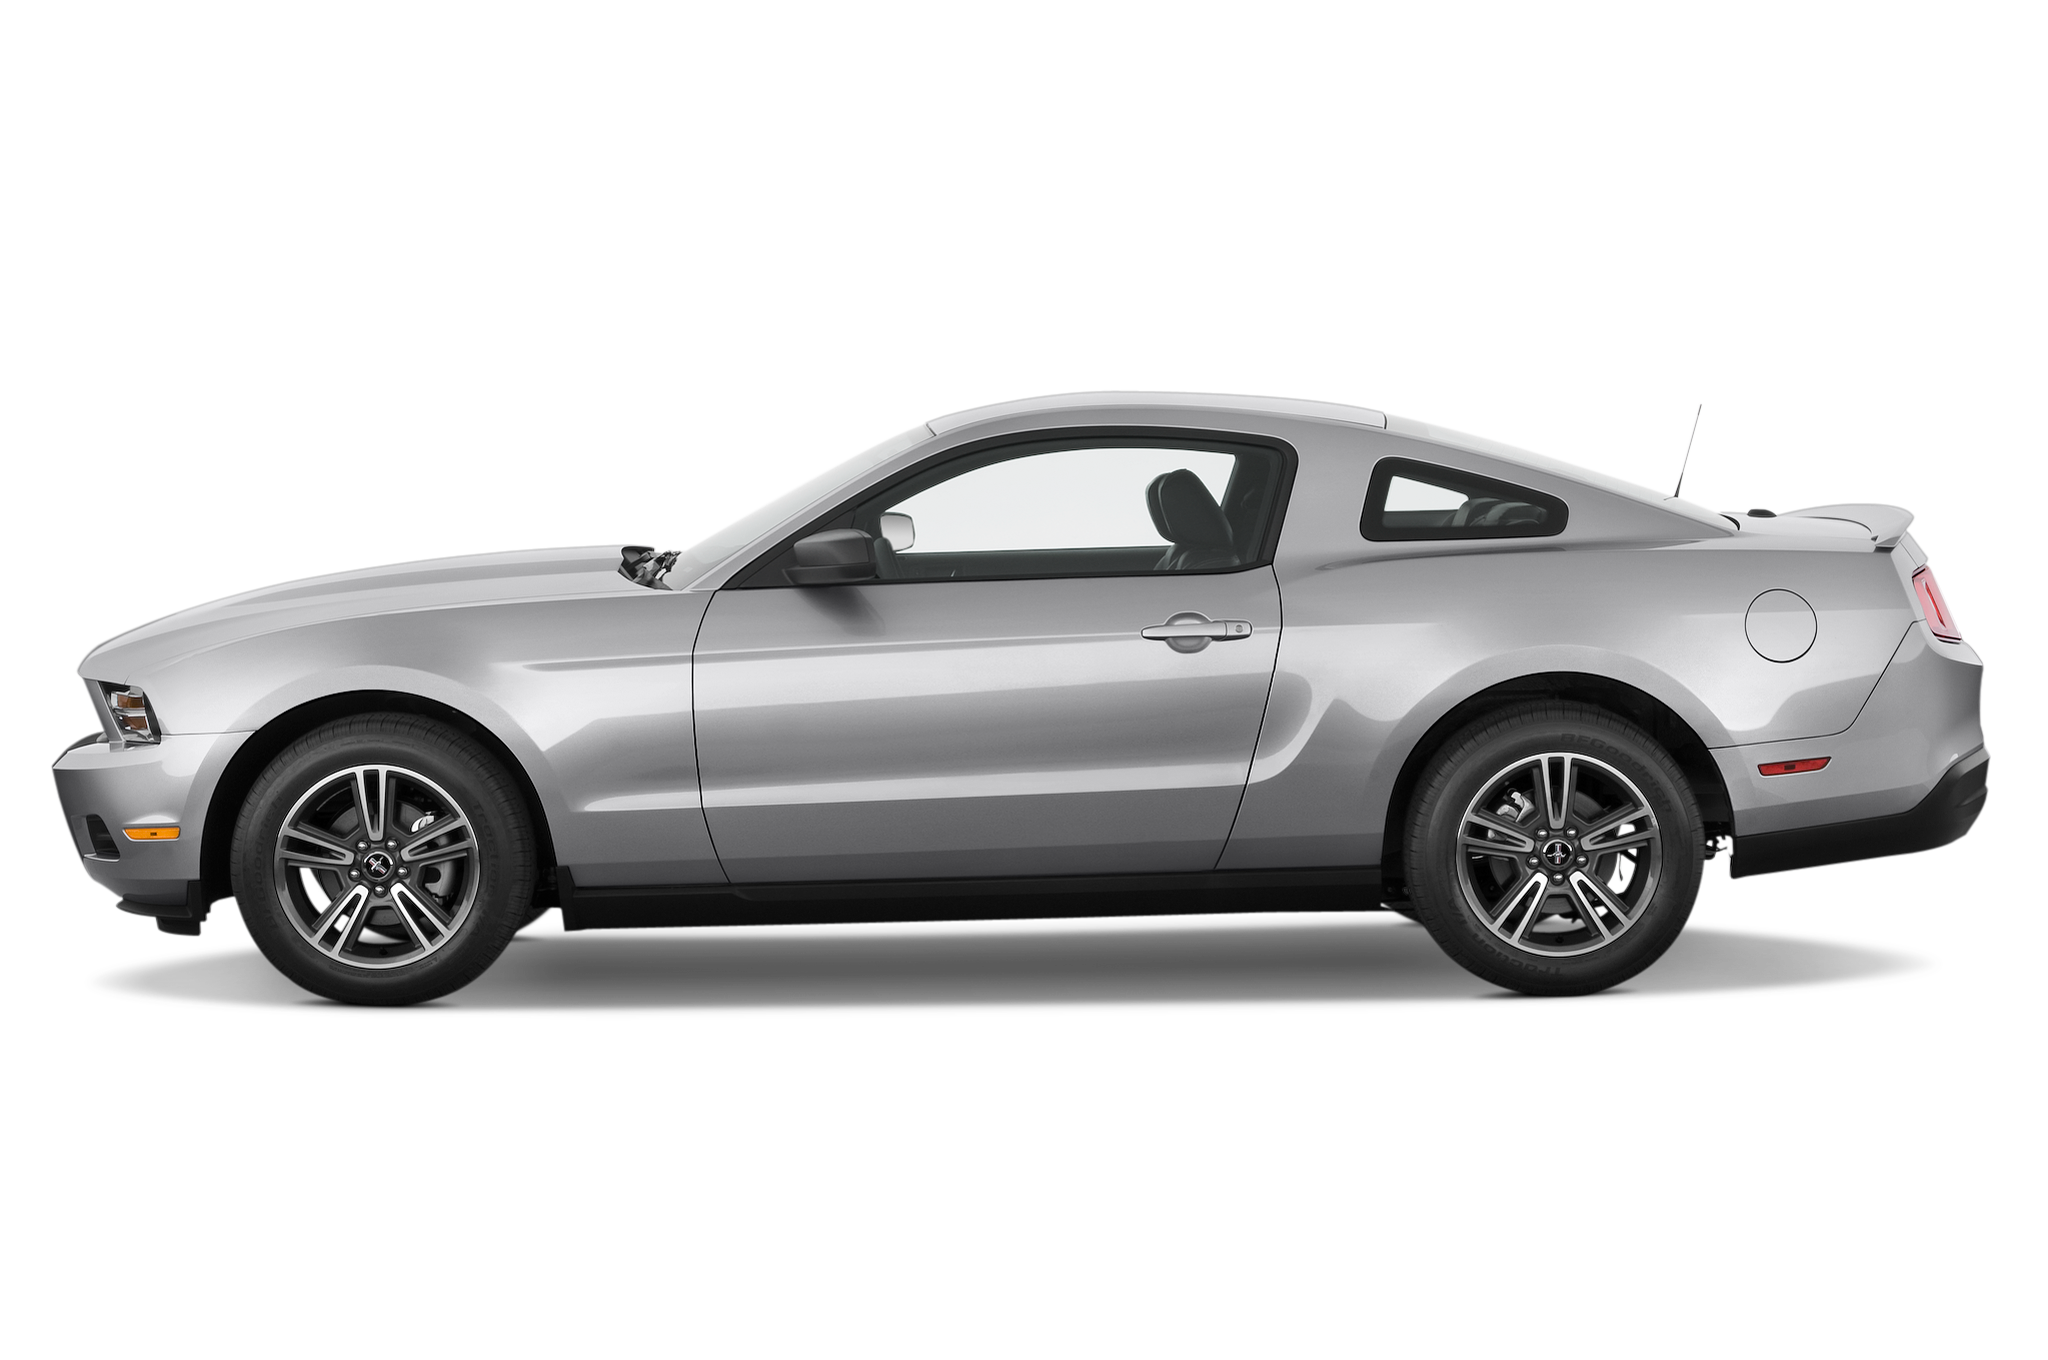 2010 Roush Mustang 427R - Ford Sport Coupe Review